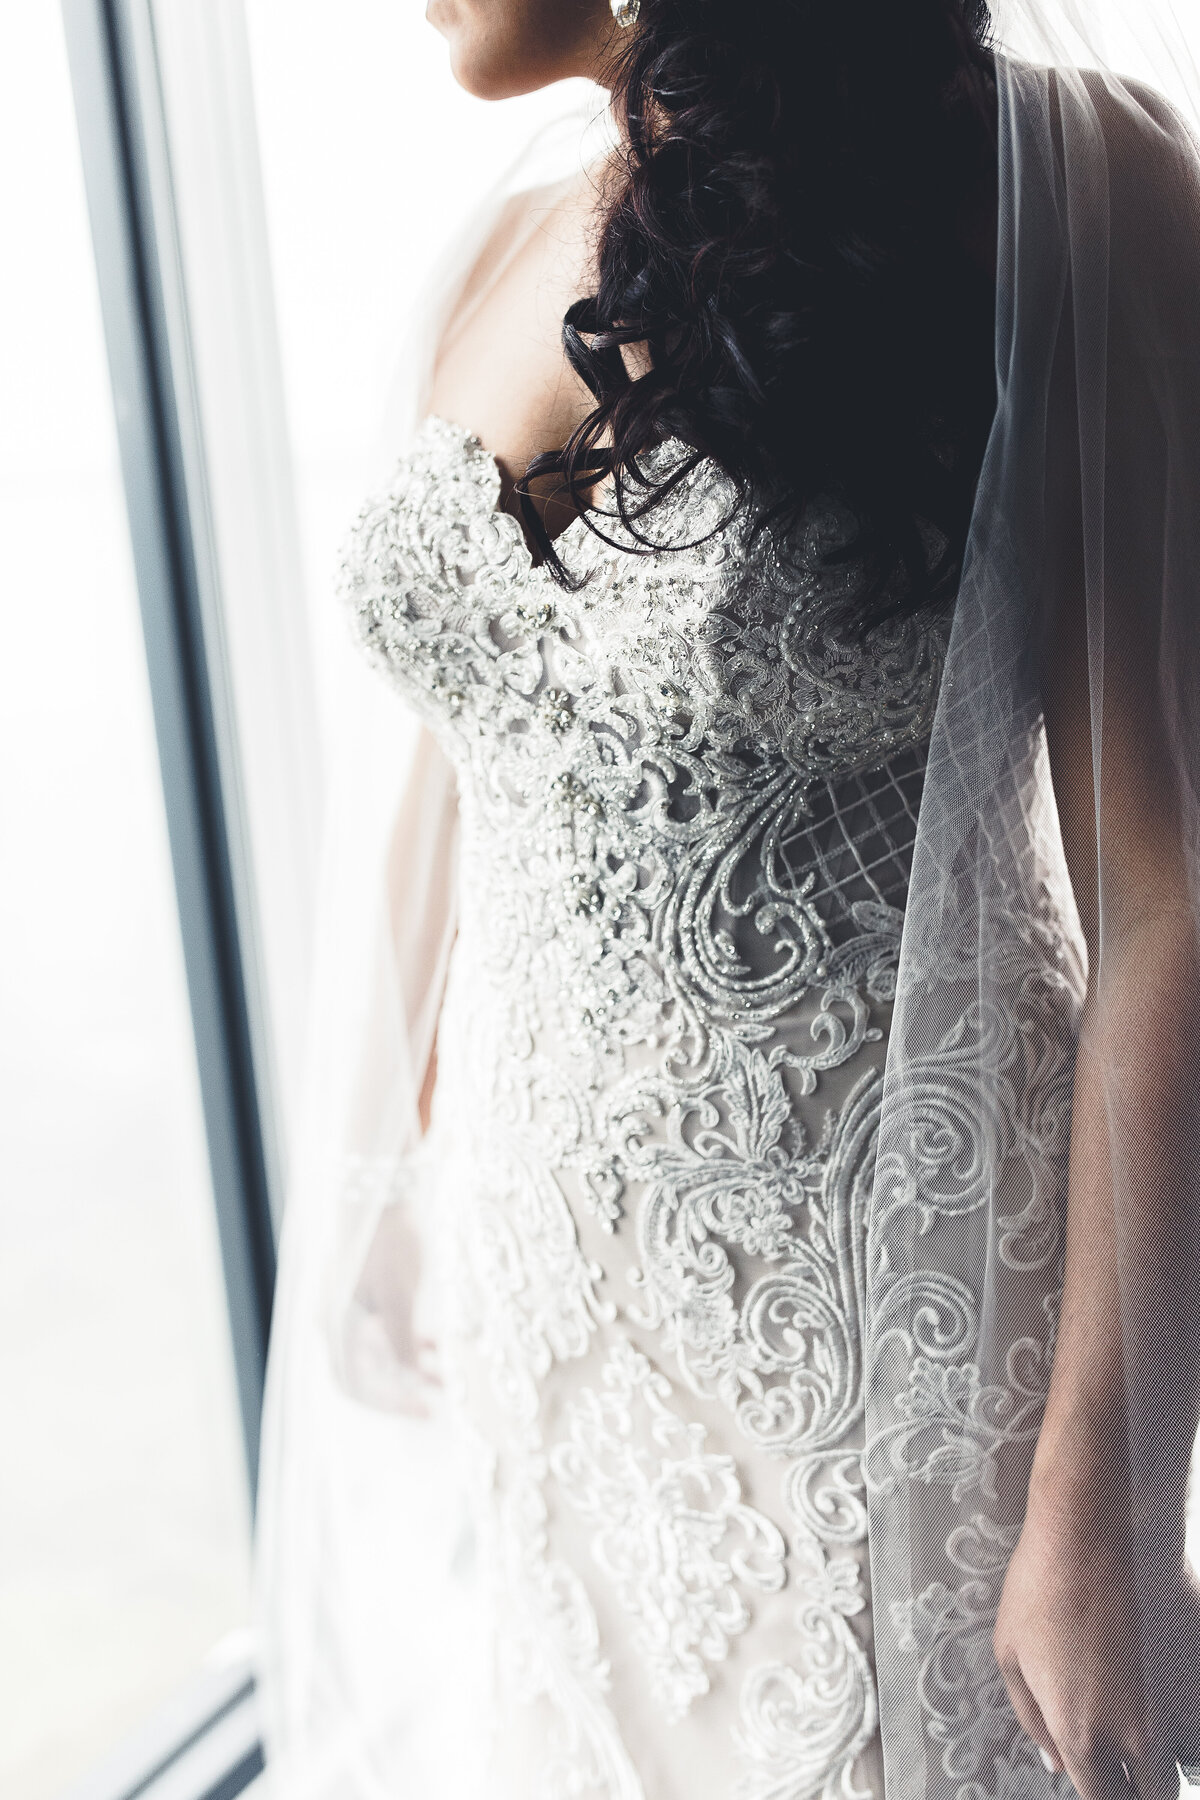 bride by window in lace dress moody photography